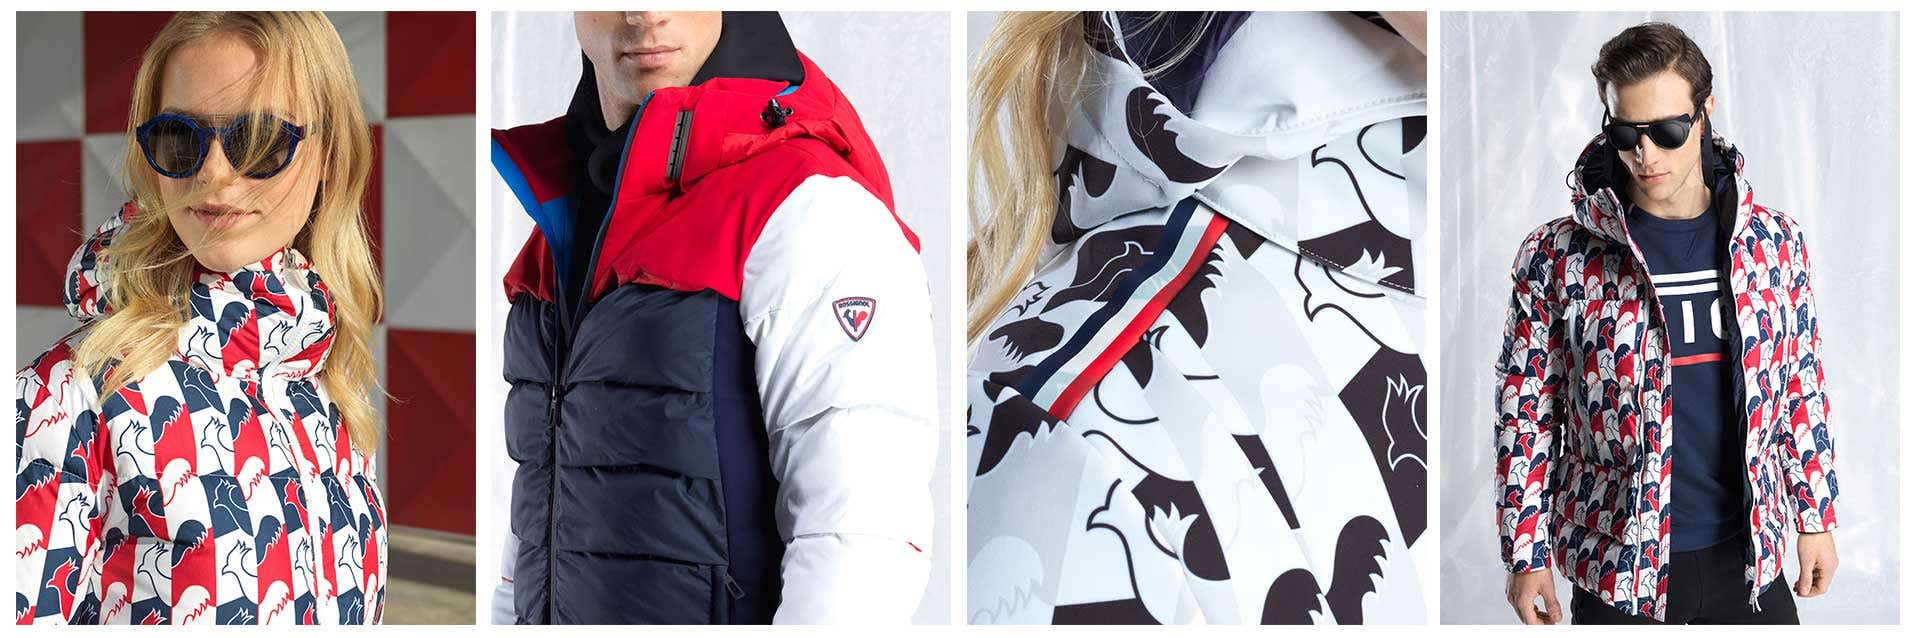 Rossignol history iconic codes heritage apparel